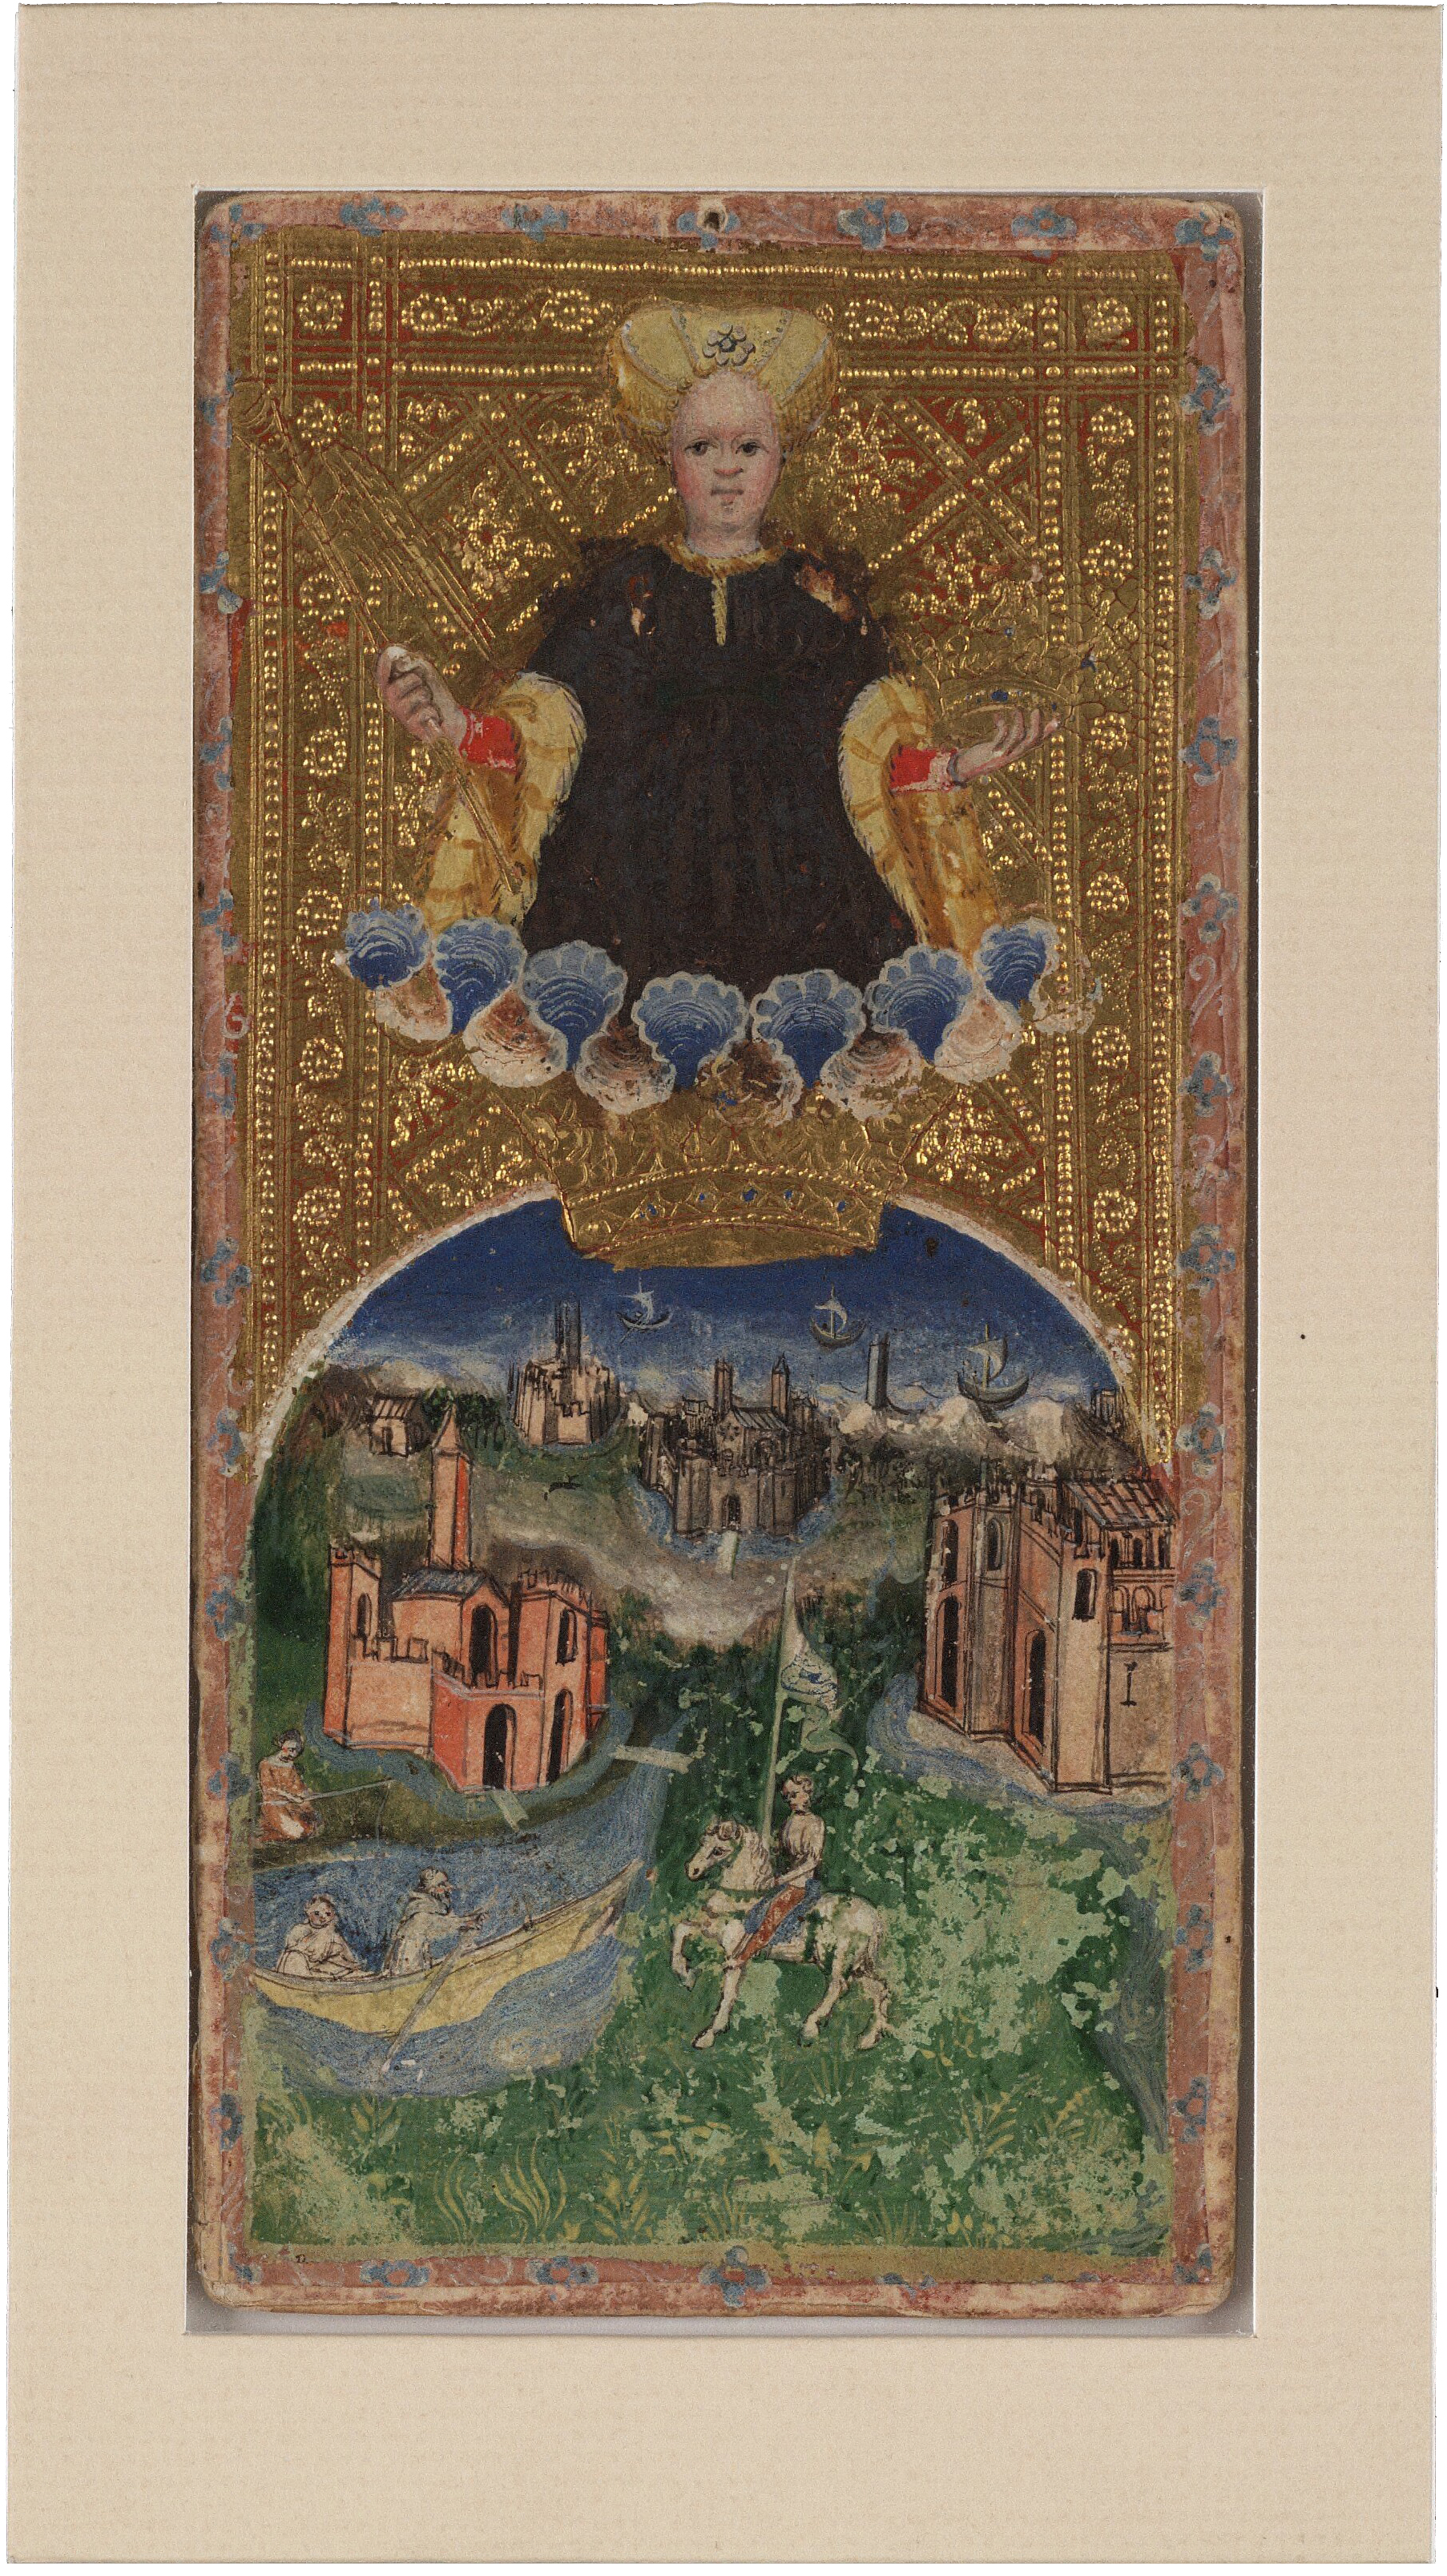 World from the Visconti Tarot , Bonifacio Bembo Beinecke Rare Book and Manuscript Library, c. 1426-1447